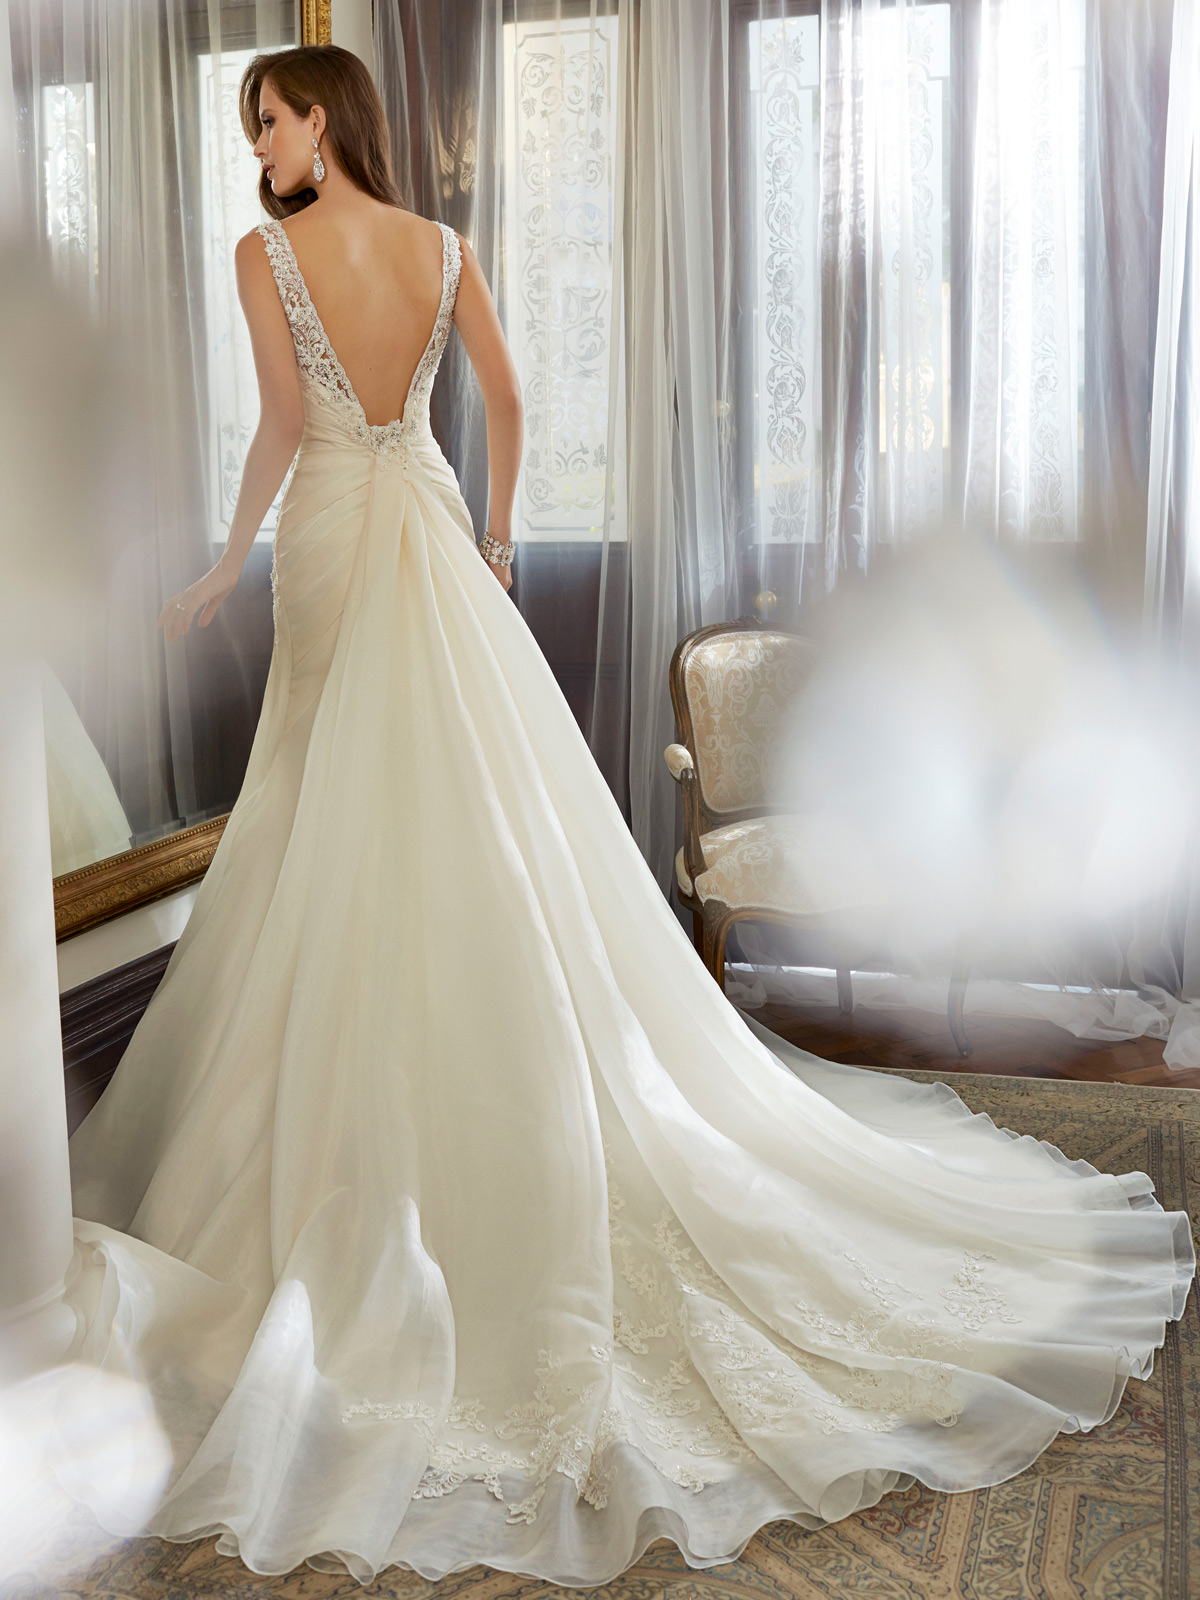 Sophia Tolli Spring 2015 Collection Y11559